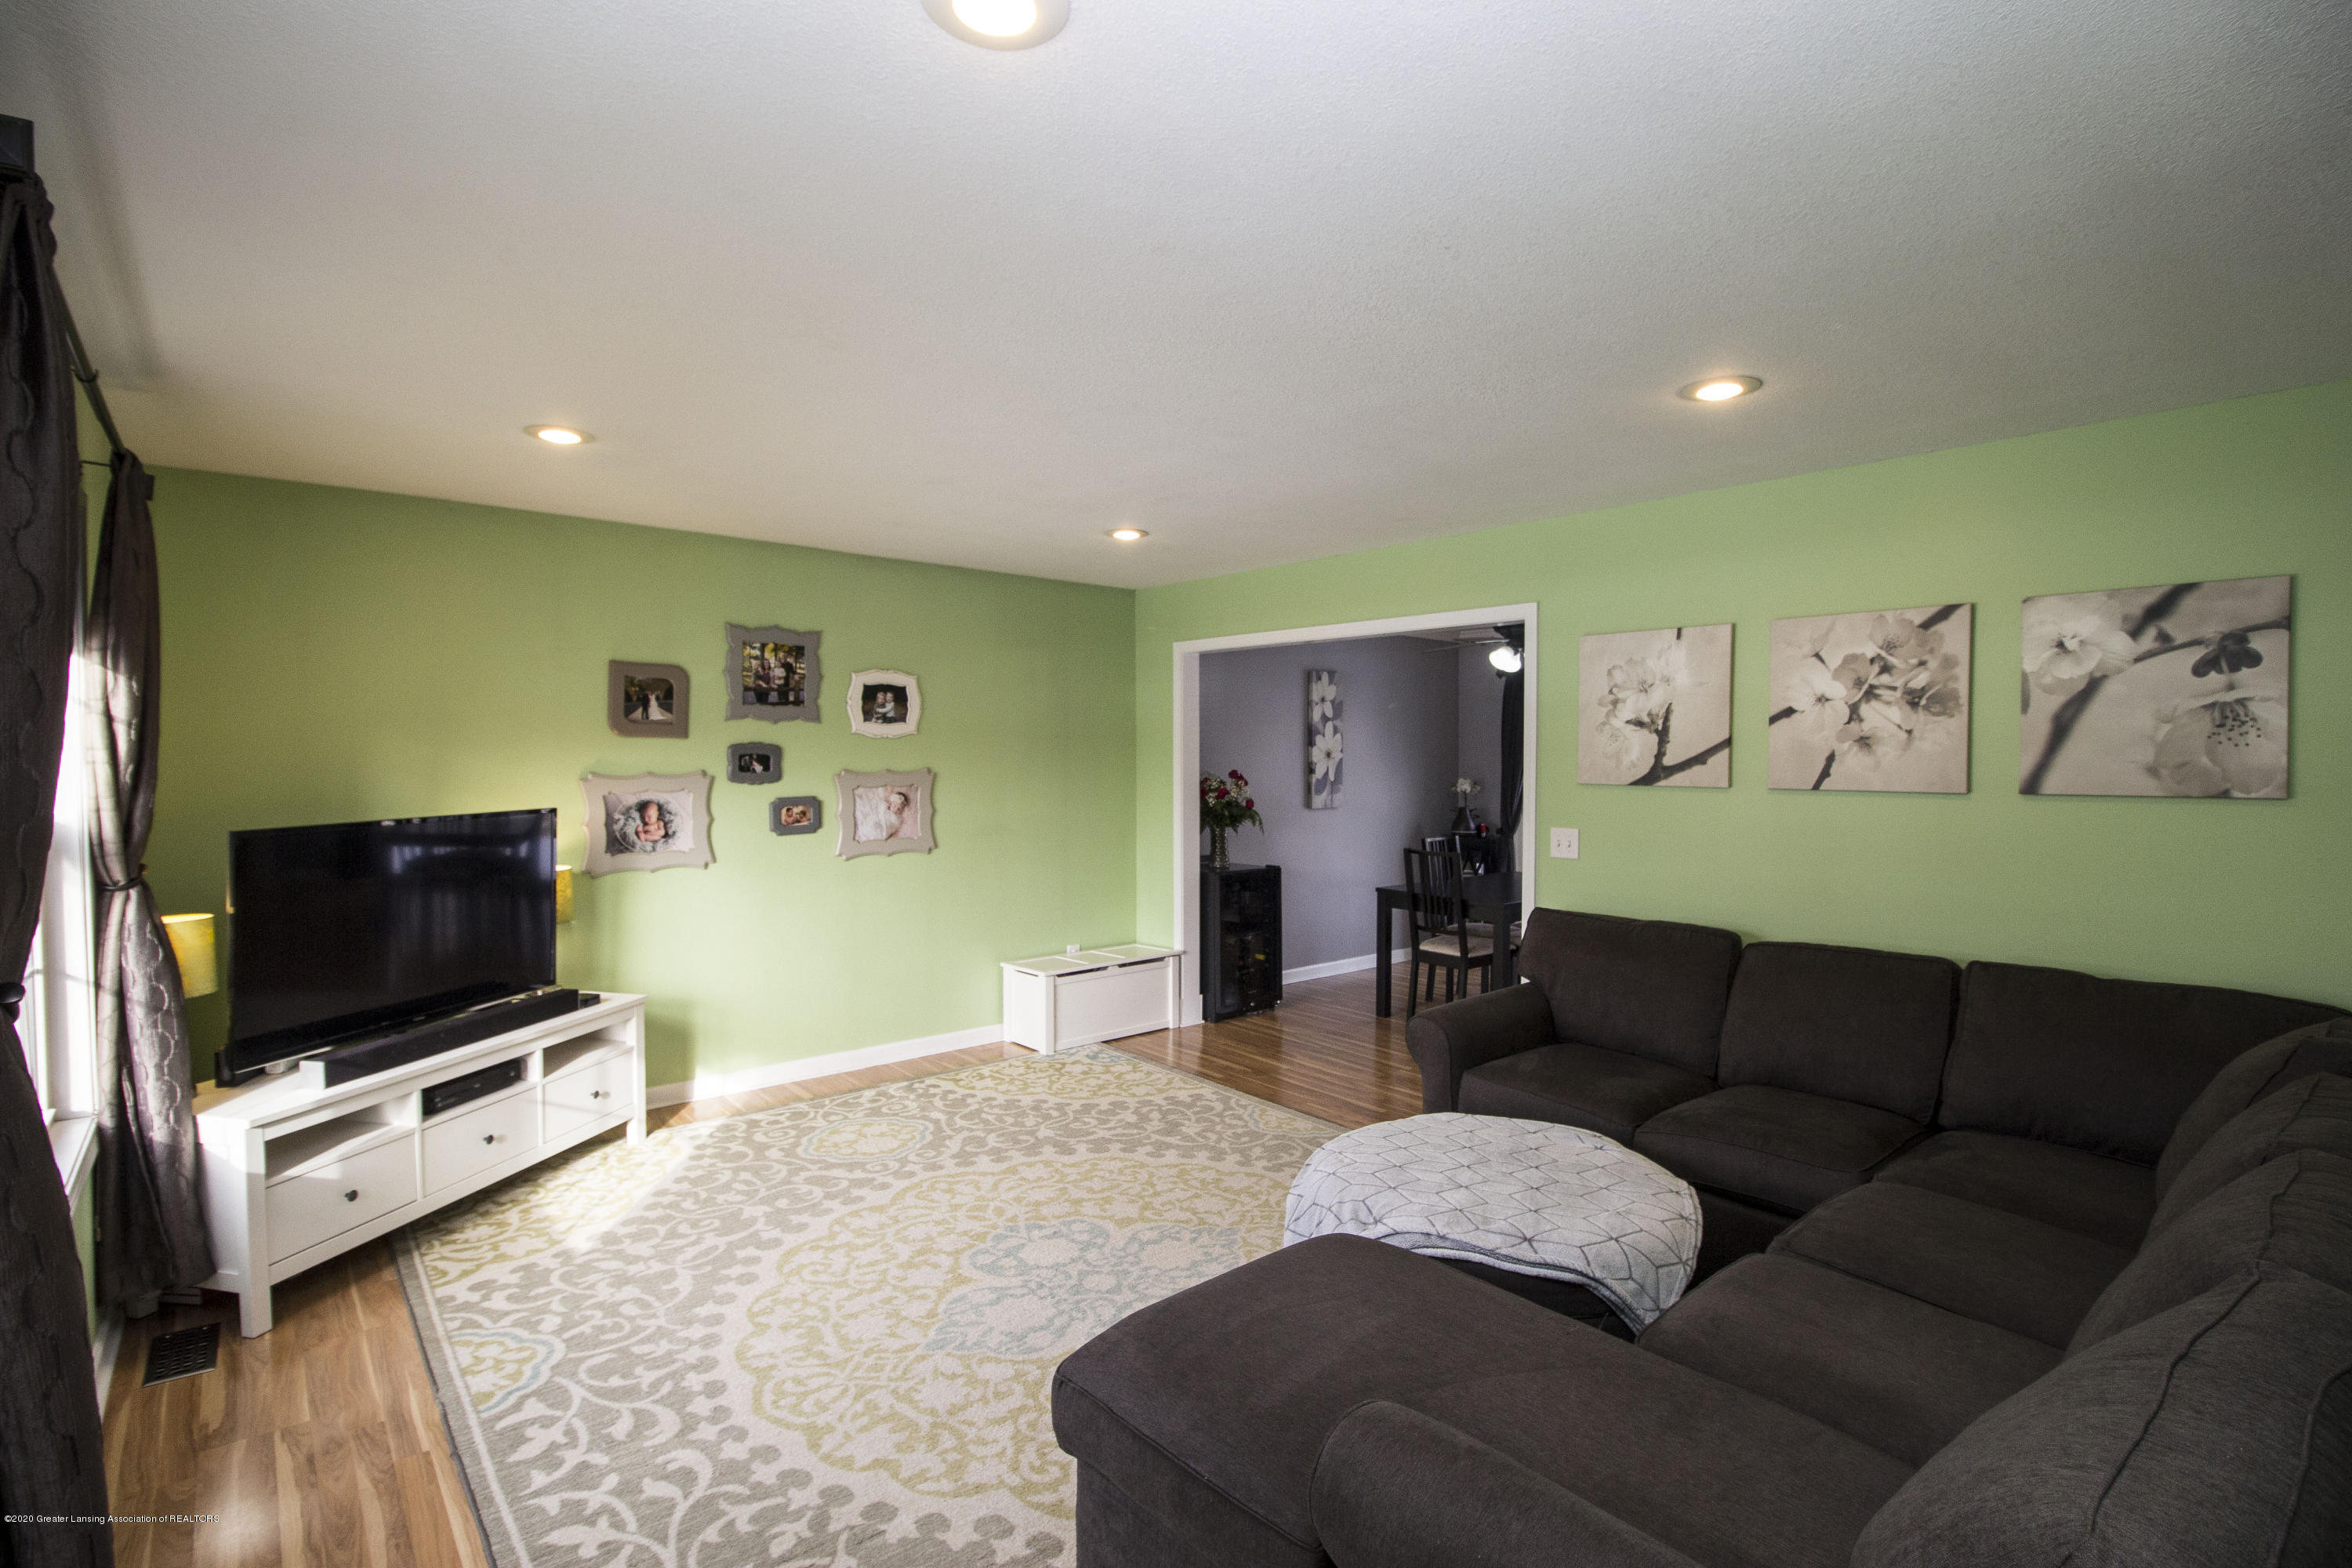 5498 Caplina Dr - Living room 1 - 5